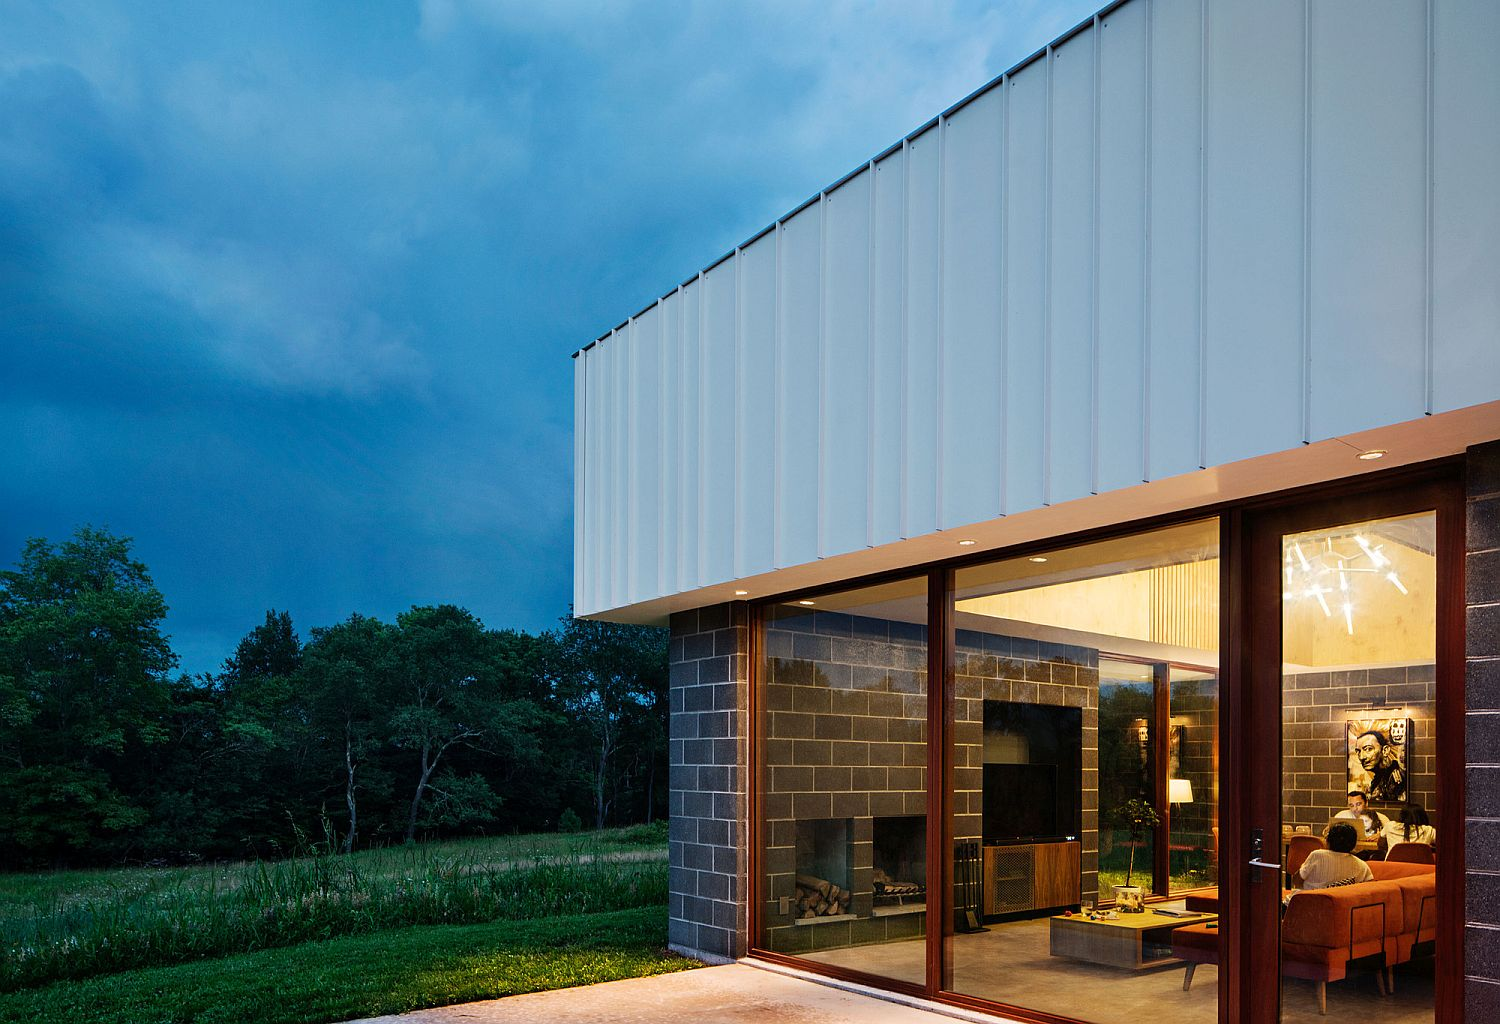 Metallic-upper-level-of-the-home-gives-it-a-unique-facade